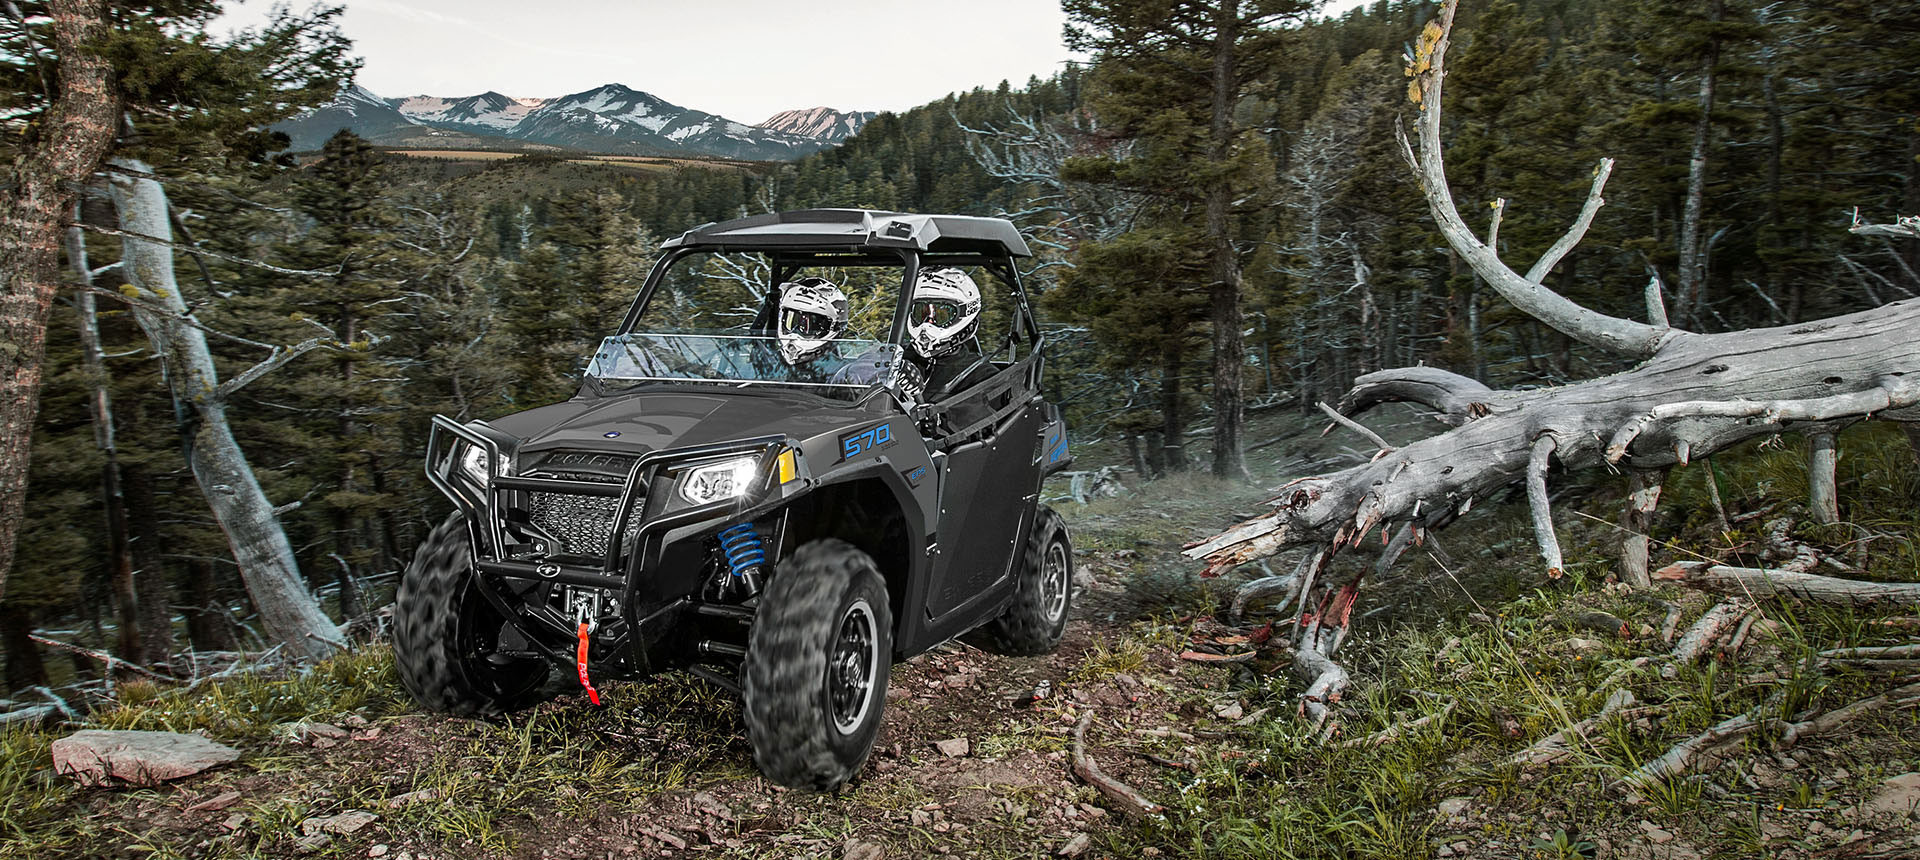 2020 RZR<sup>®</sup> Trail 570 Instagram image 2